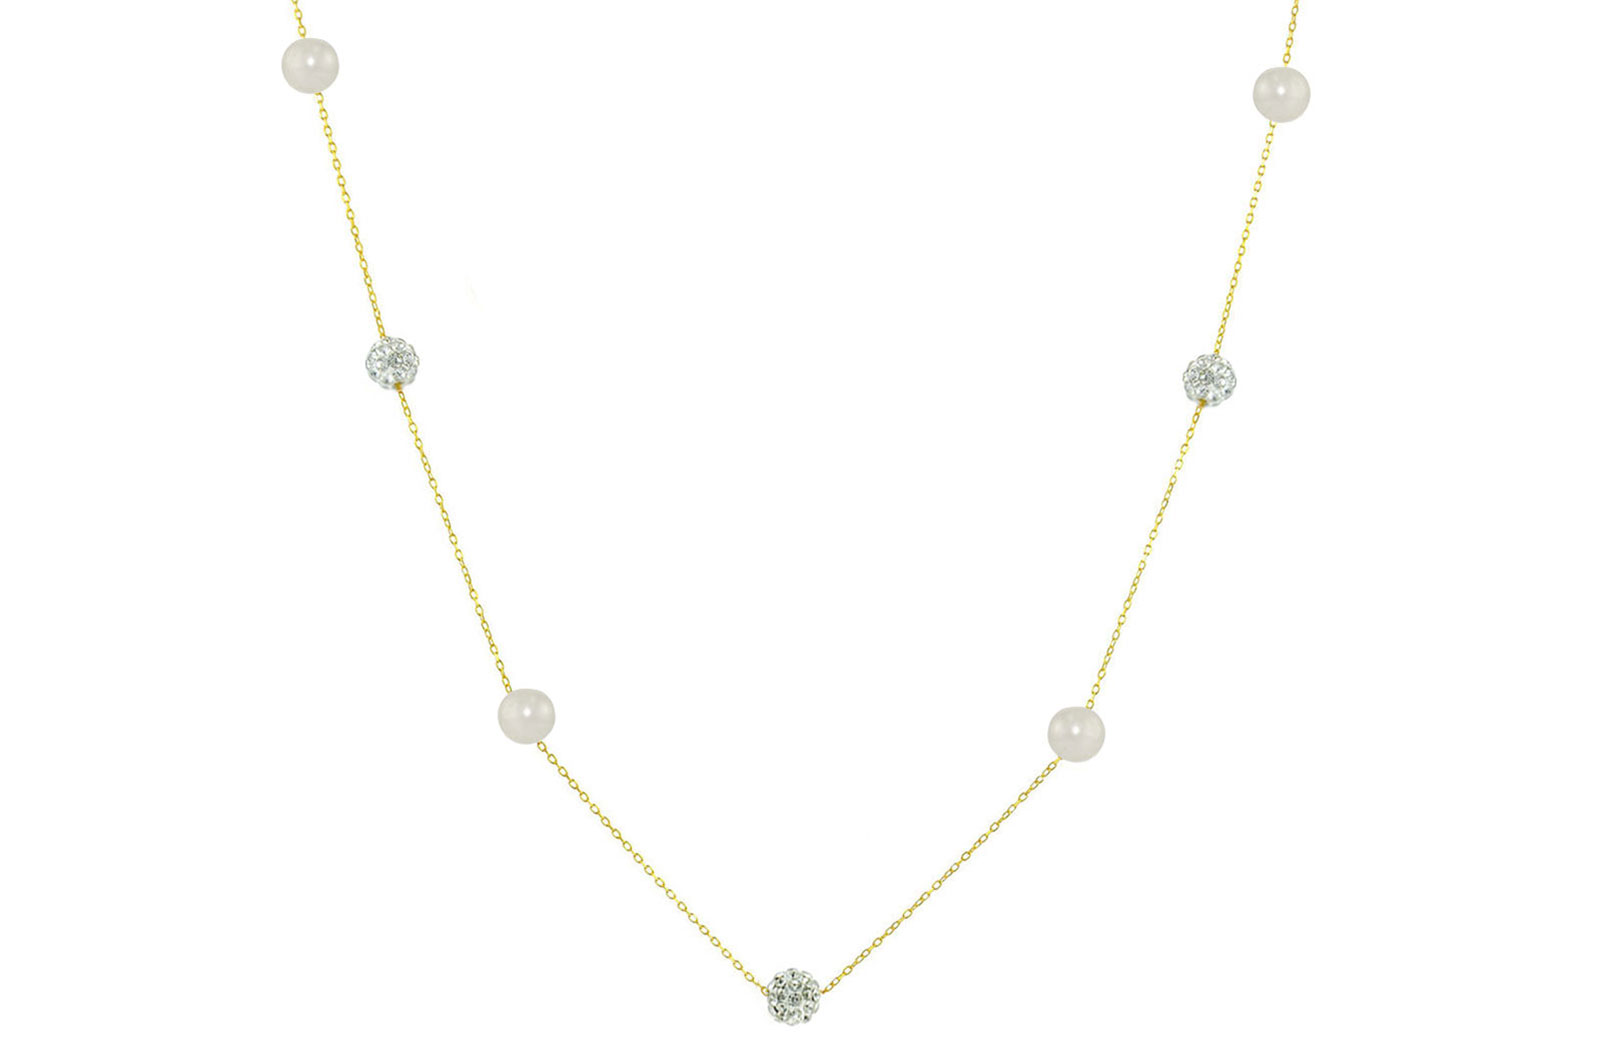 Vera Perla 18K Solid Gold Gradual Built-in 5-6mm Crystal Ball and White Pearls Necklace